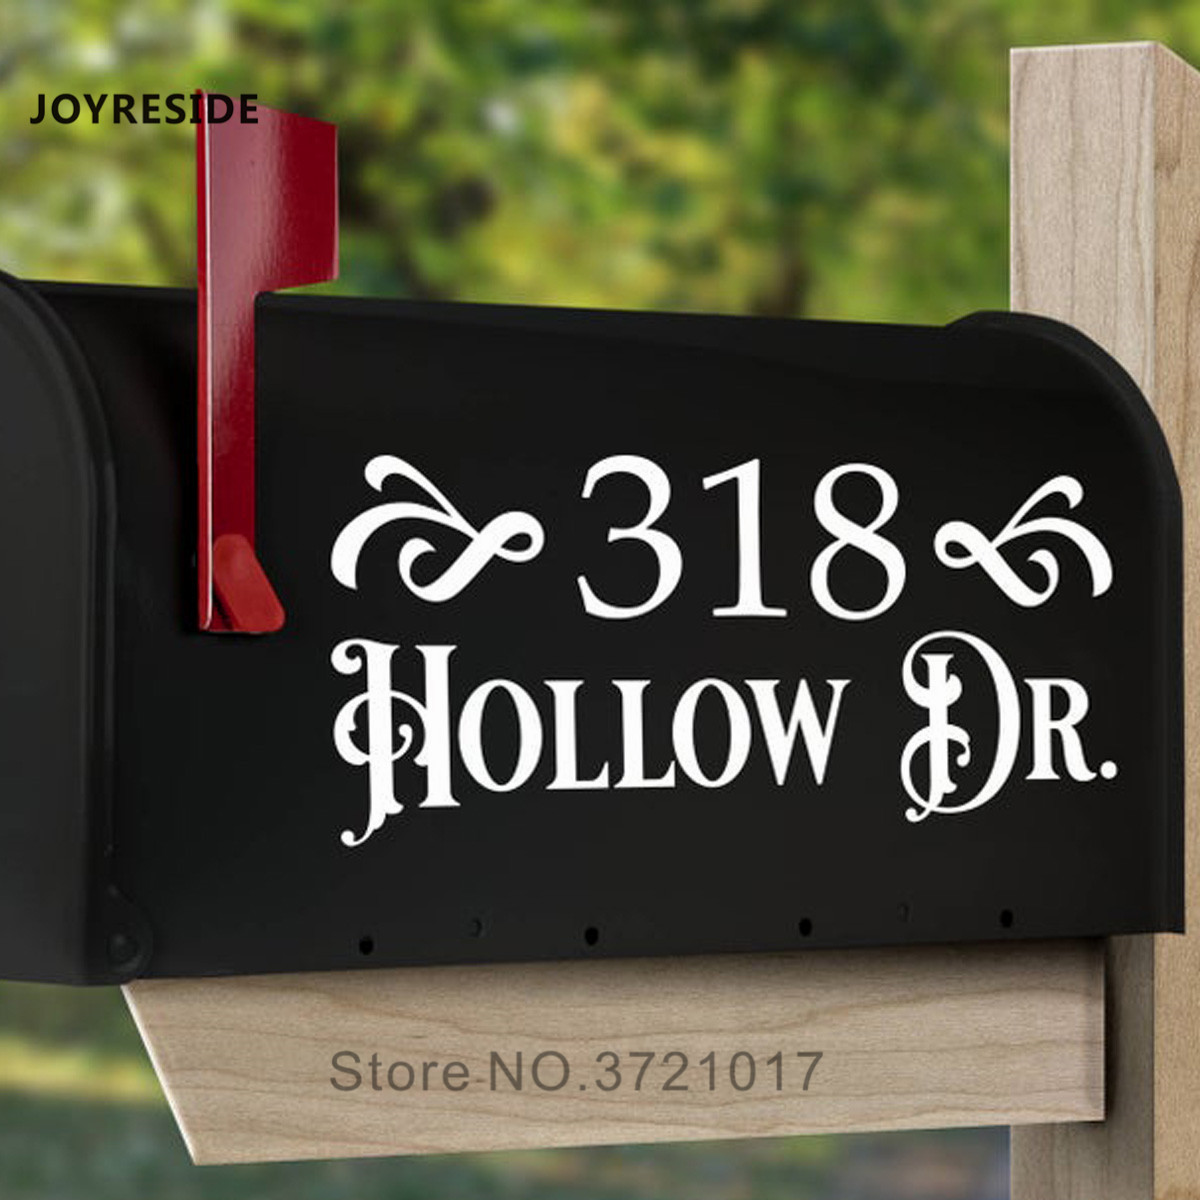 2 sets Numbers for Mailbox Door Decal Vinyl Letters Custom DIY /& Save White Black Blue Vinyl Letters Home Decor Outdoor Sticker House Mail